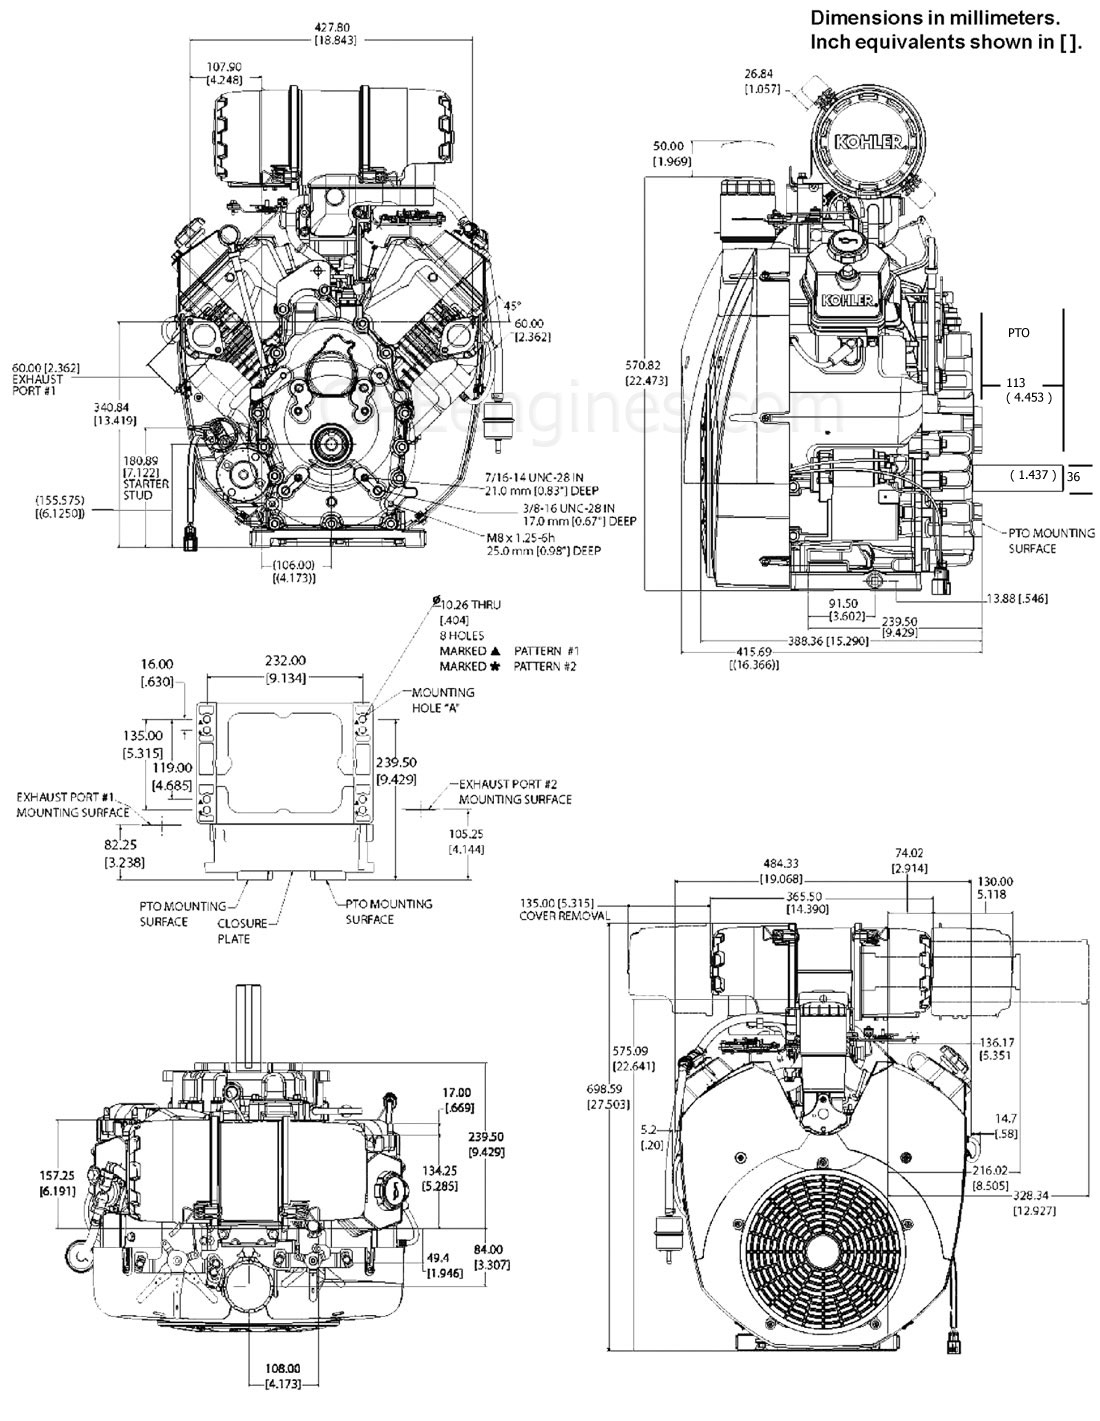 Ch25s Kohler Parts Diagram, Ch25s, Free Engine Image For